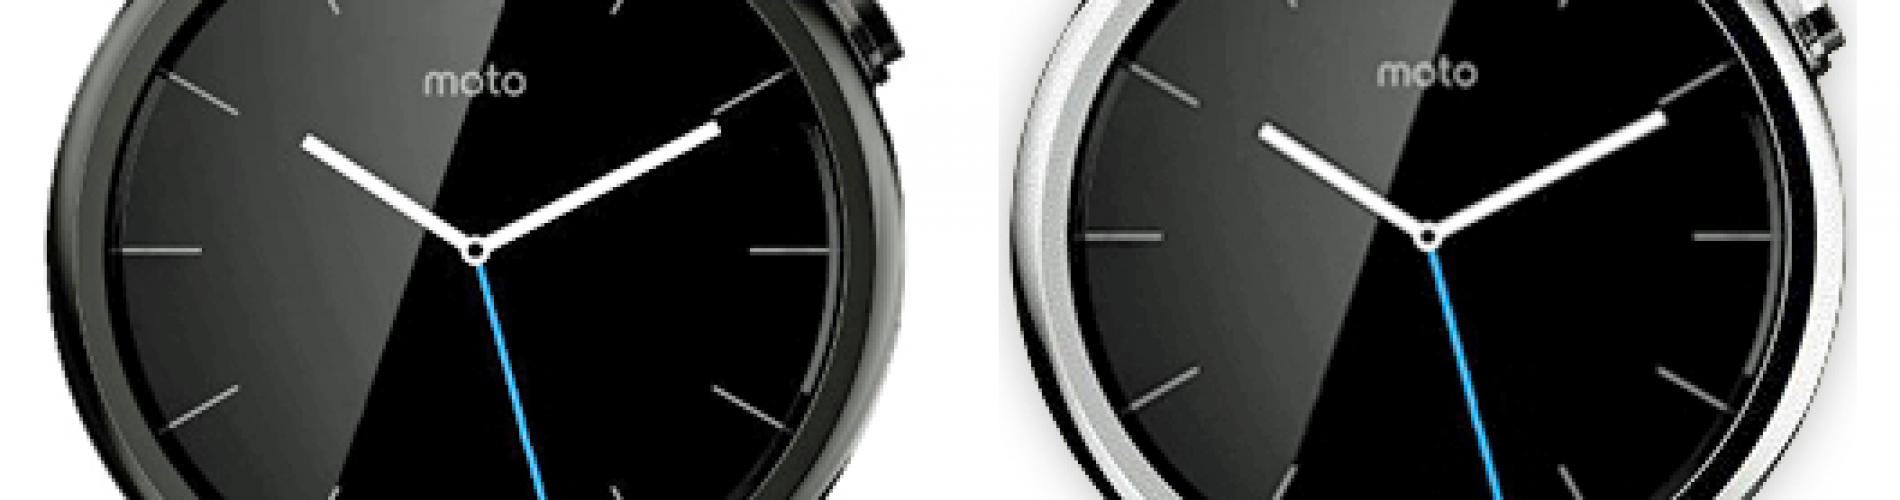 Evleaks shows off renders of the 2nd generation Moto 360